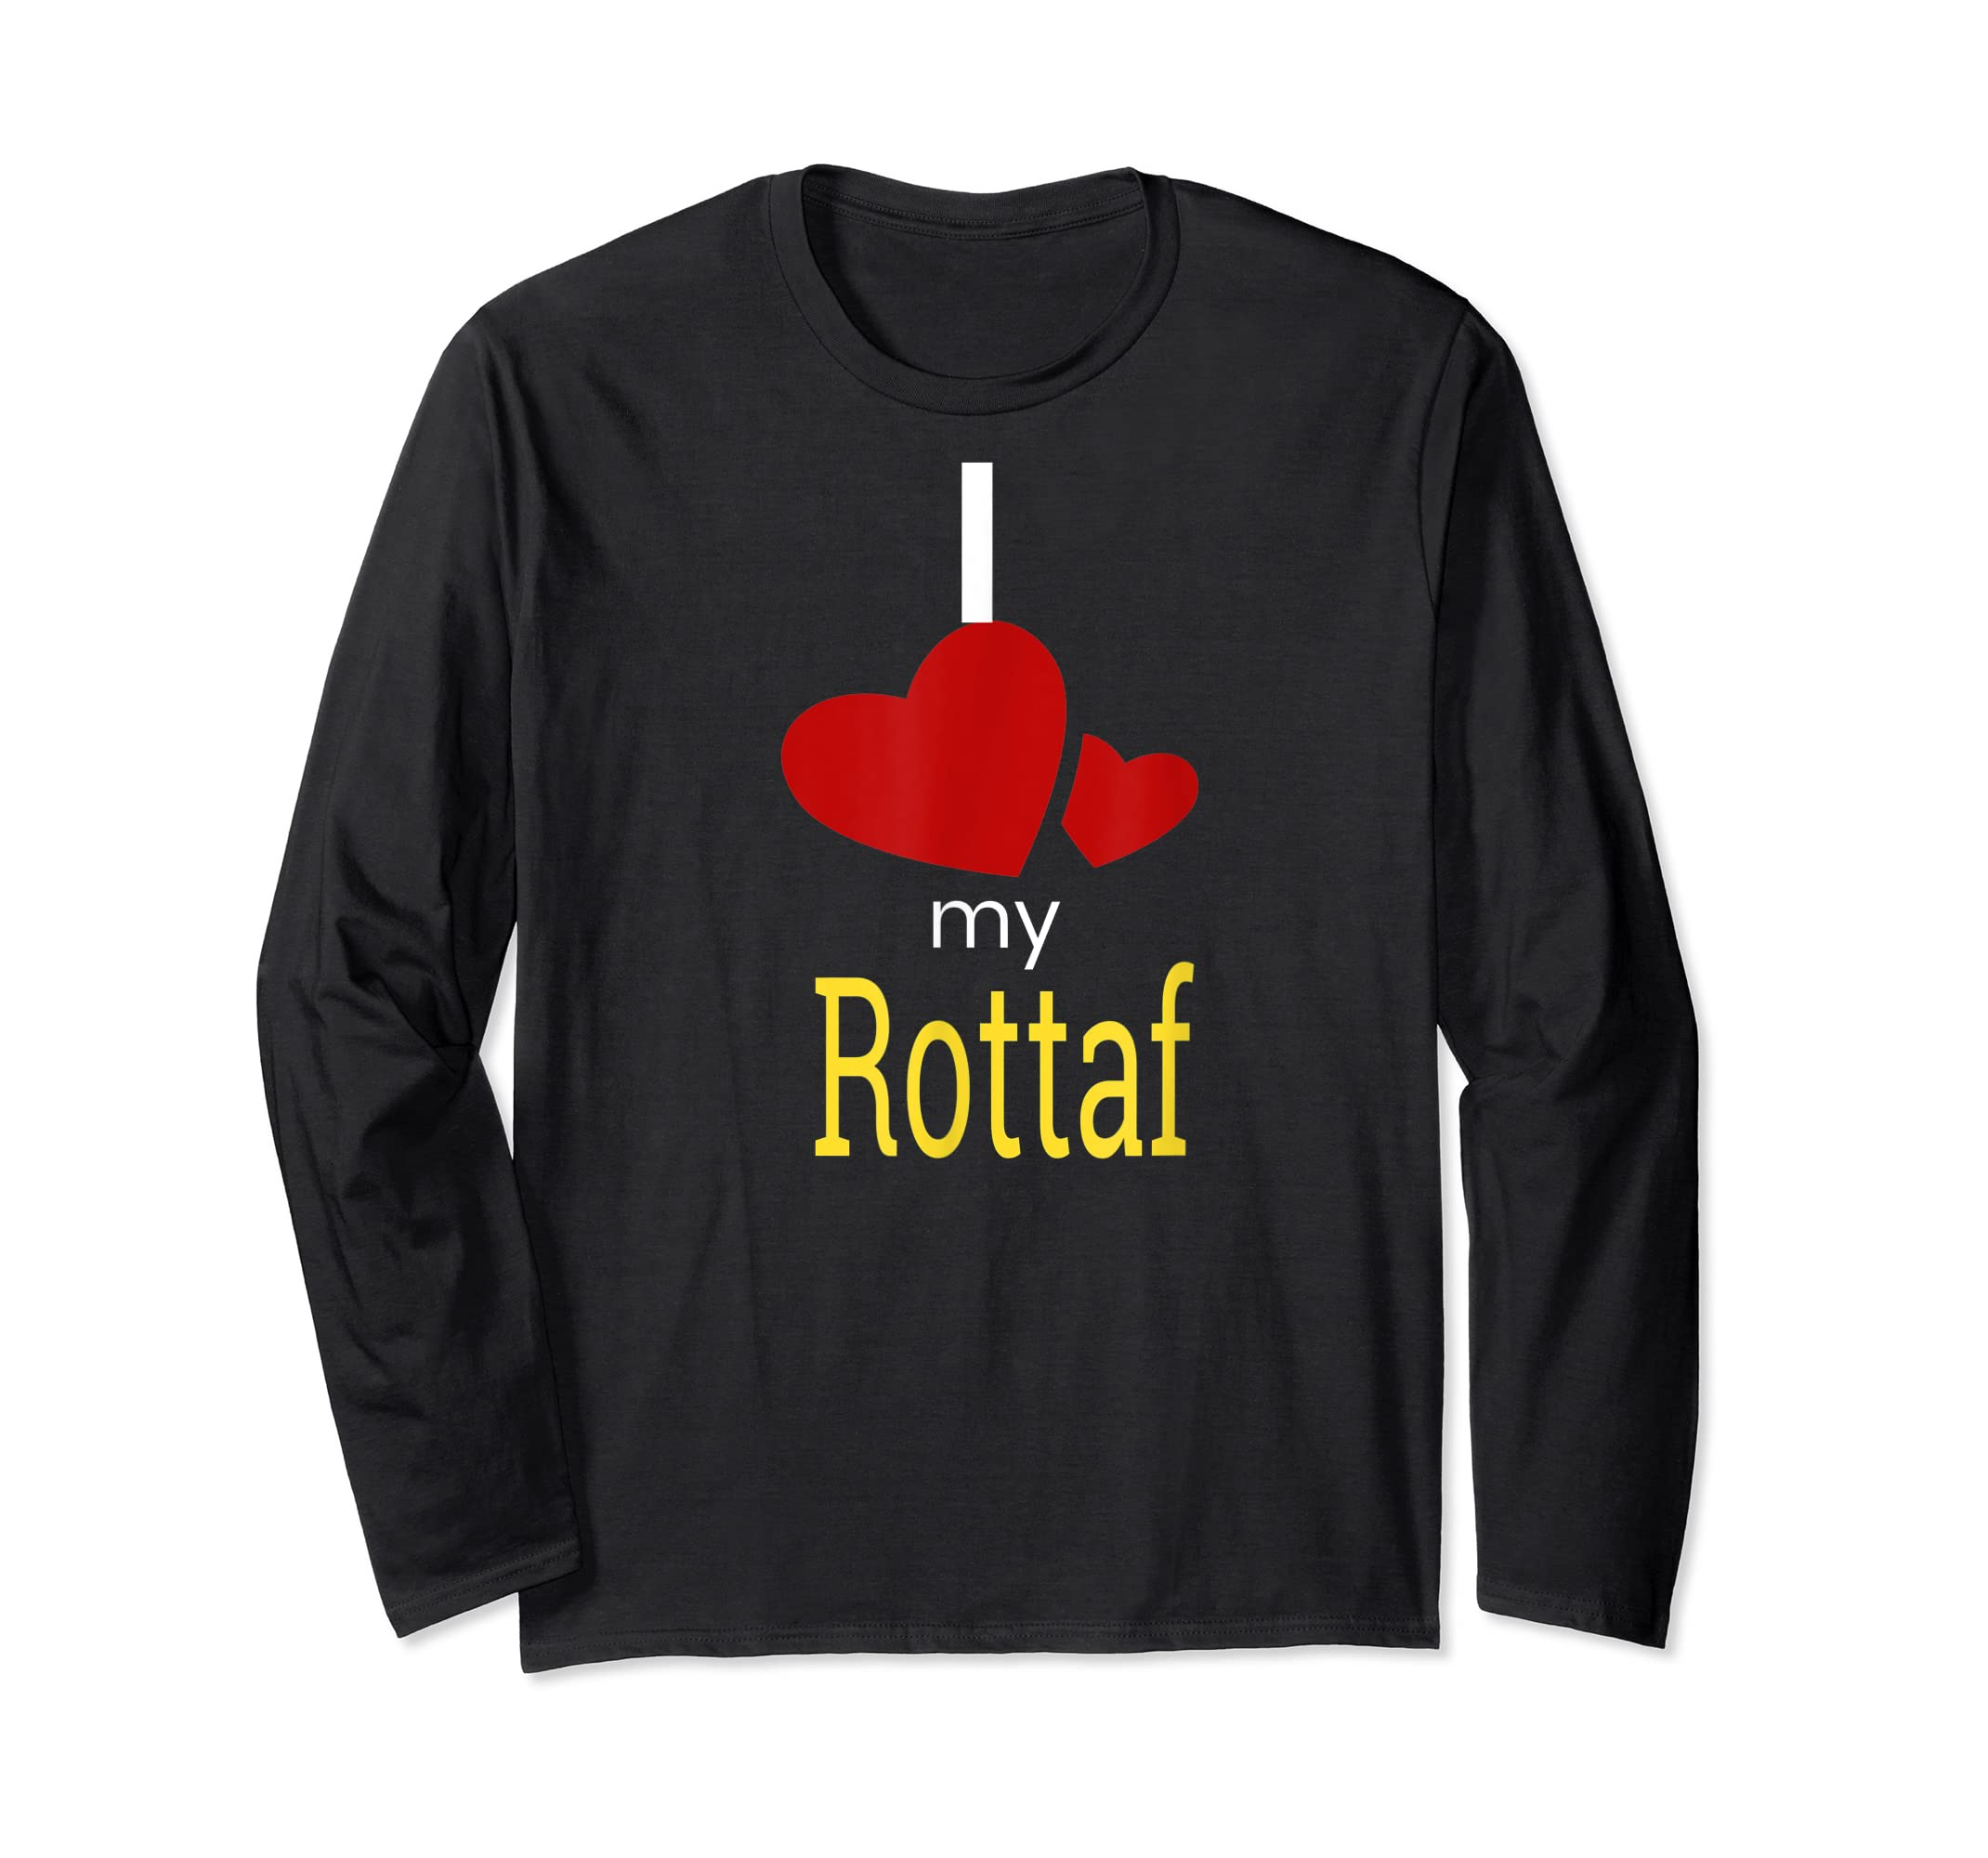 Rottaf Dog Shirt Love Rottweiler + Afghan Hound =  T-Shirt-Long Sleeve-Black